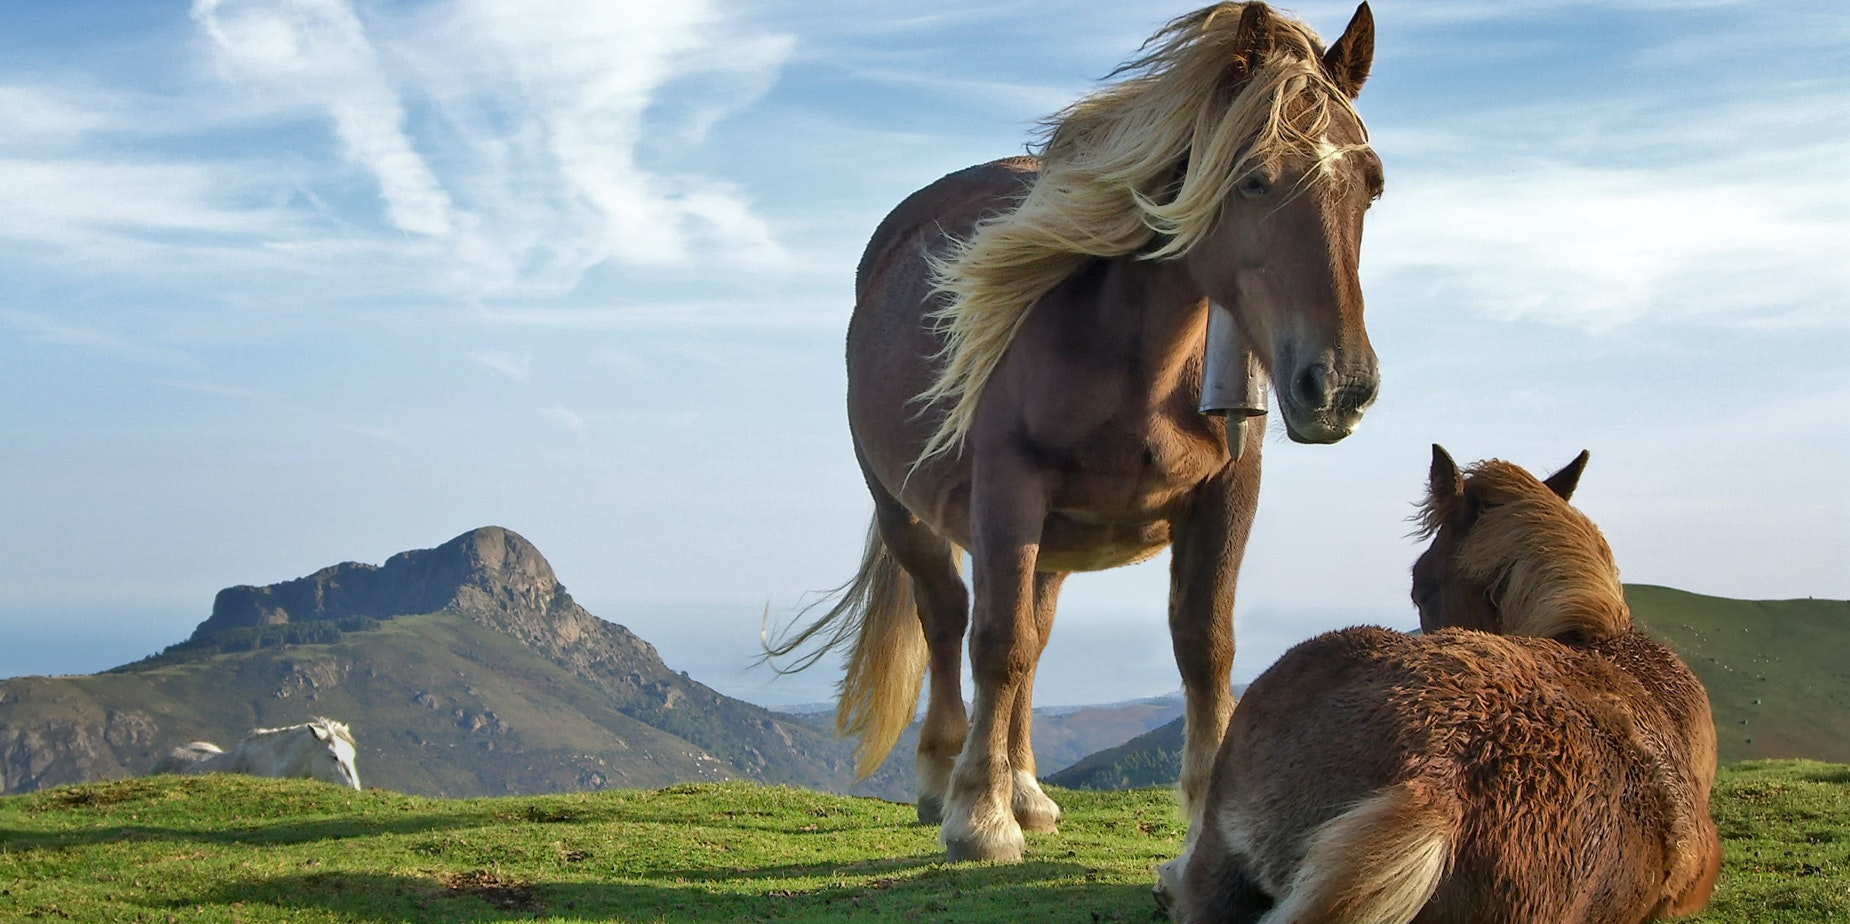 Why Horses Evolved to Have Only One Toe